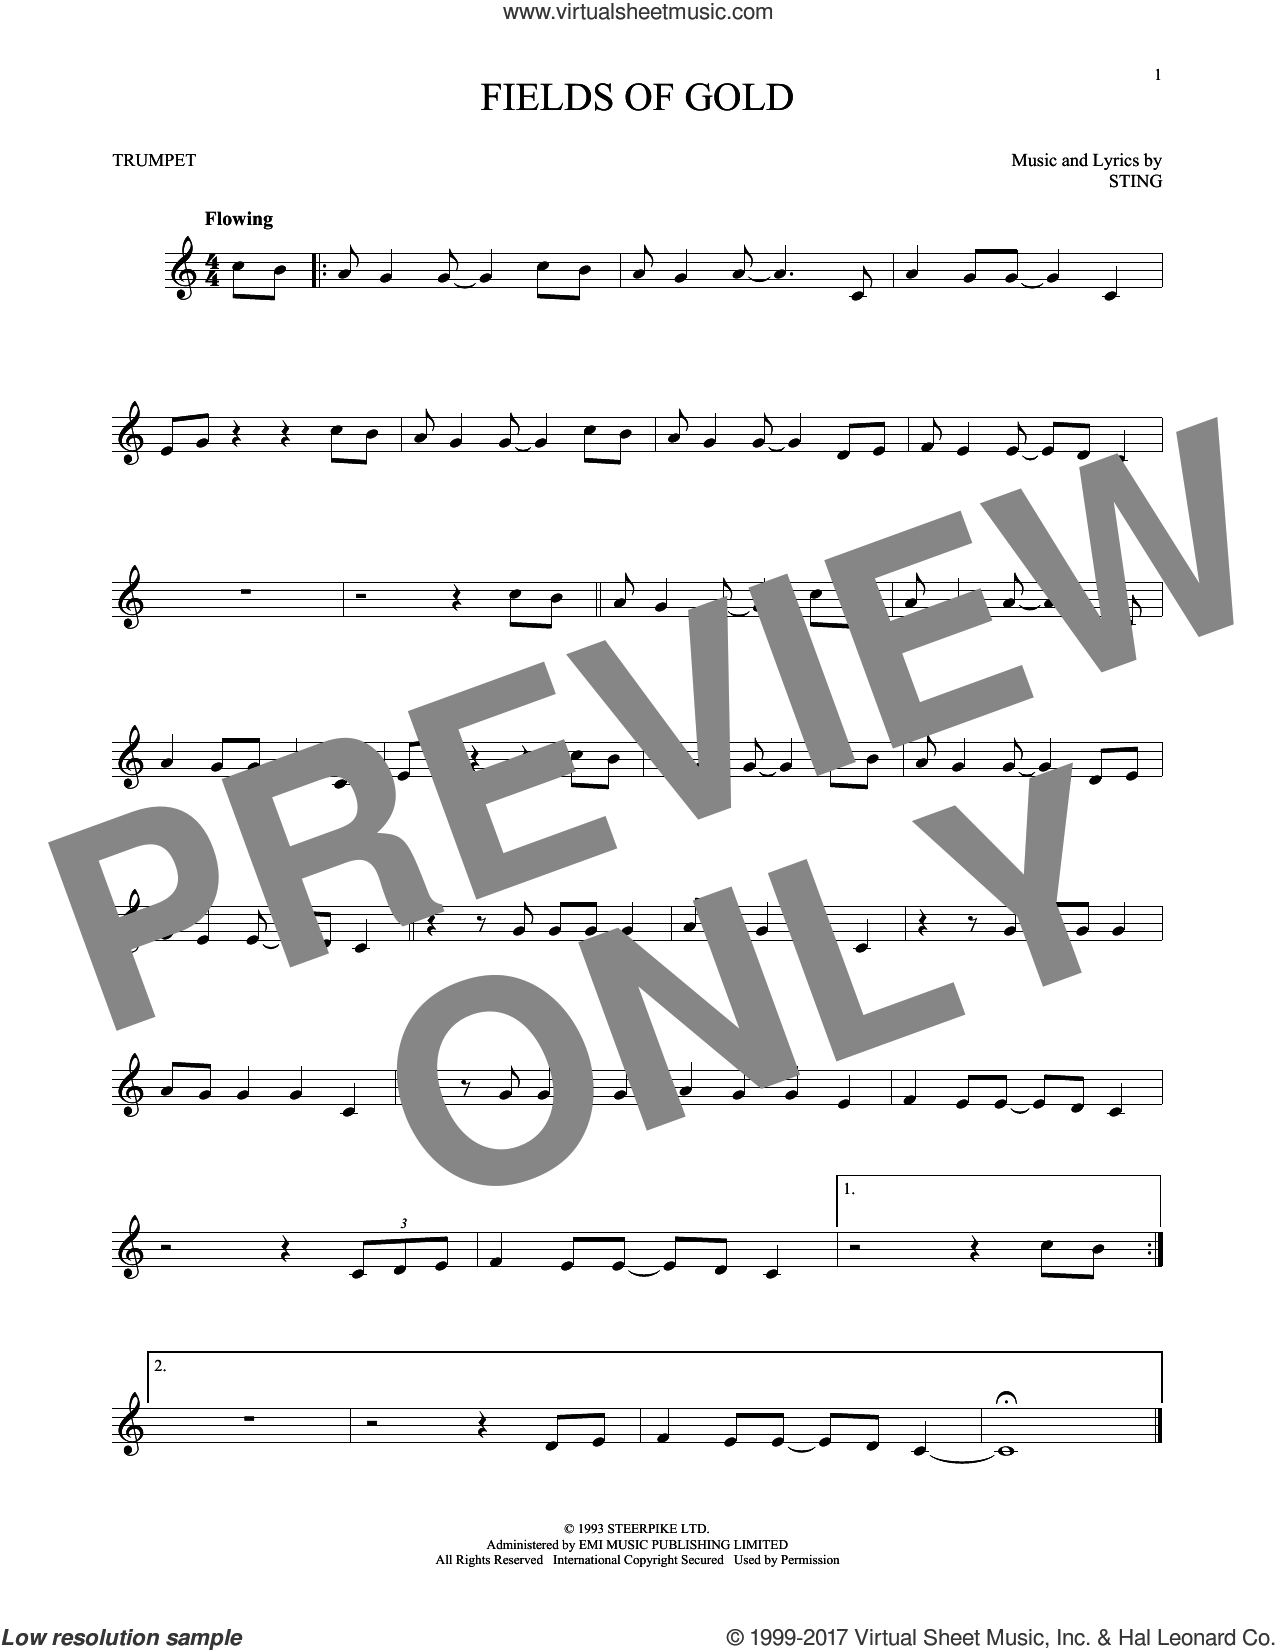 Fields Of Gold sheet music for trumpet solo by Sting, intermediate skill level